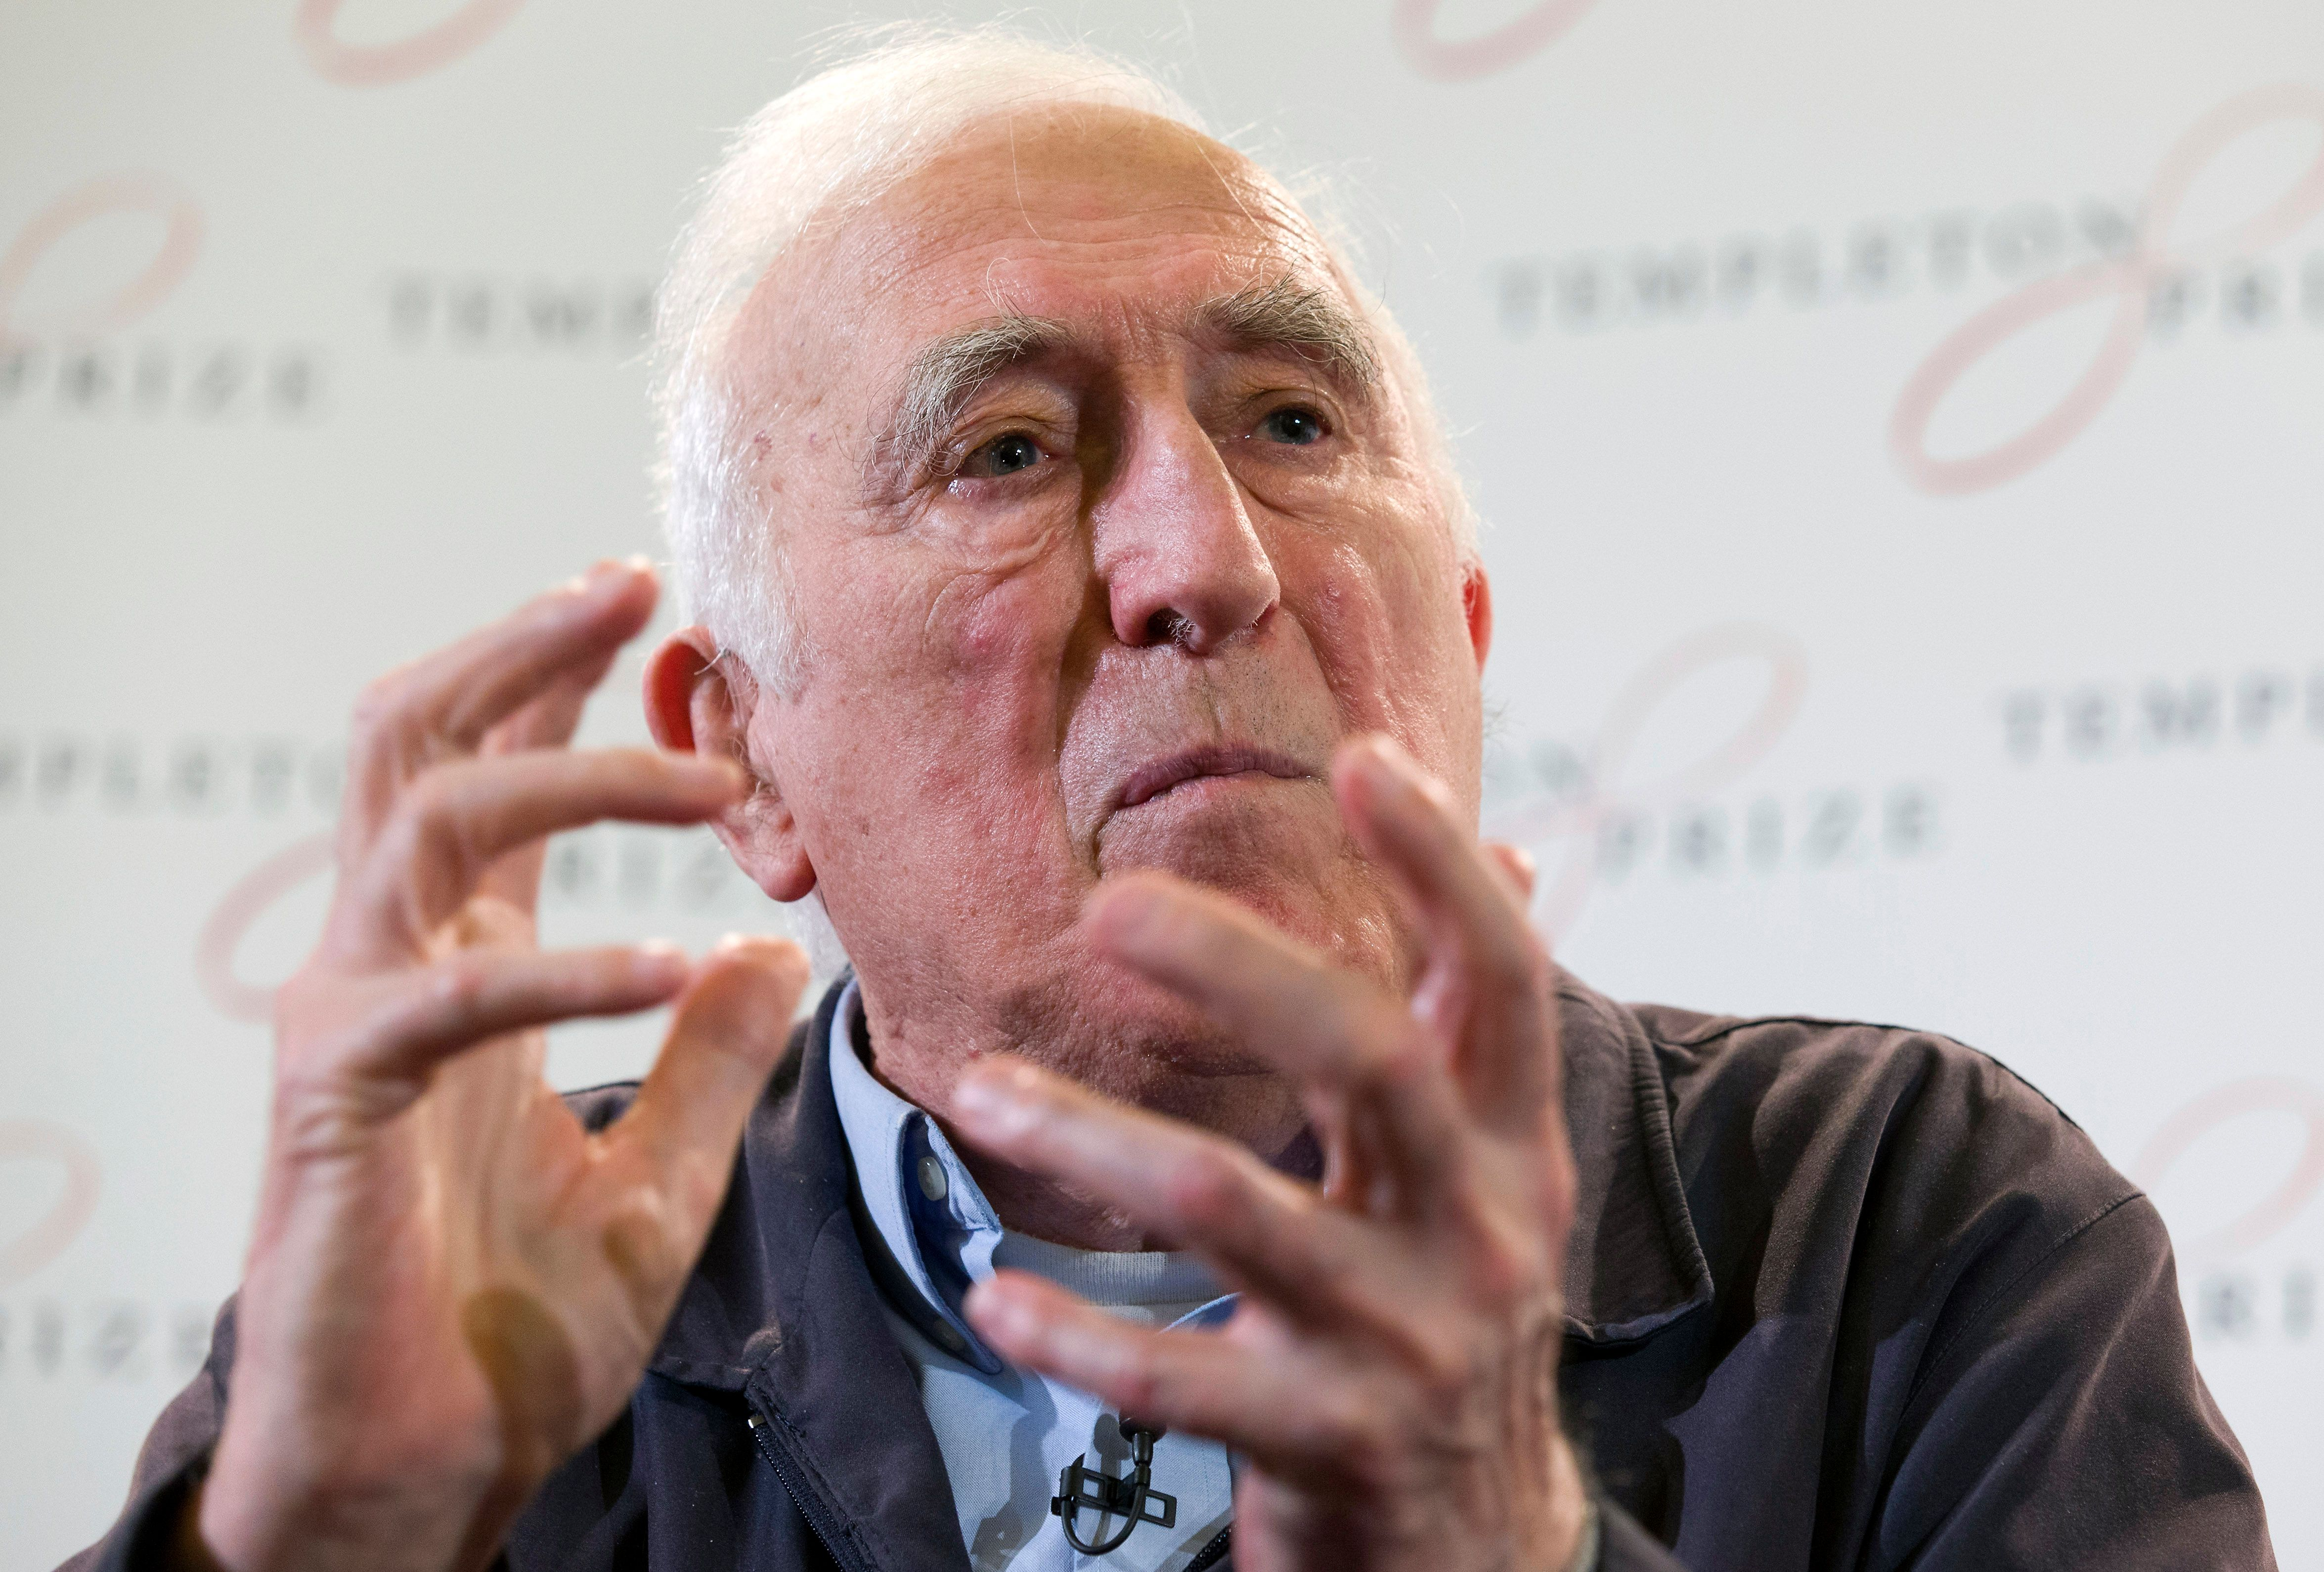 Renowned Catholic figure Jean Vanier has been accused of sexual manipulation and abuse